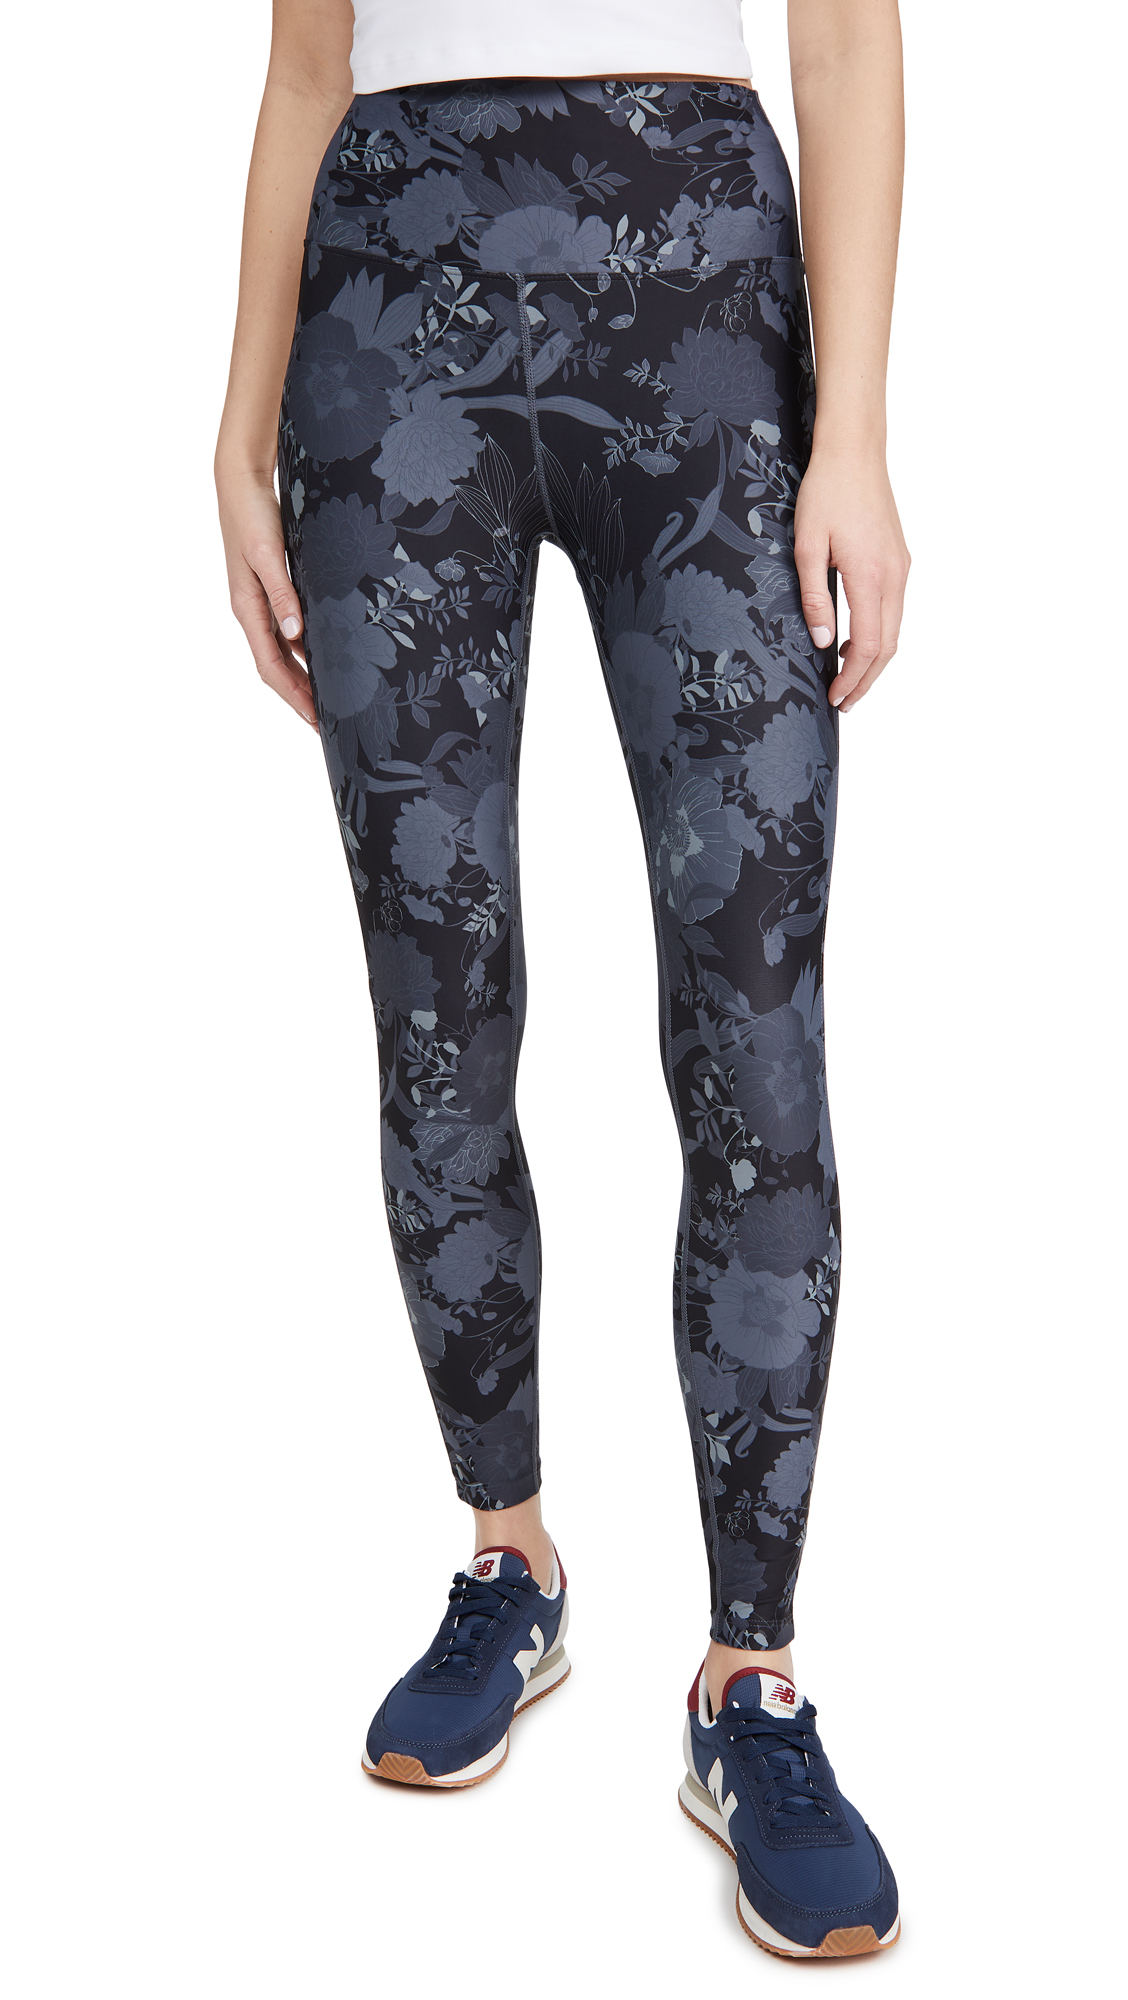 Splits59 Sydney High Waisted Leggings